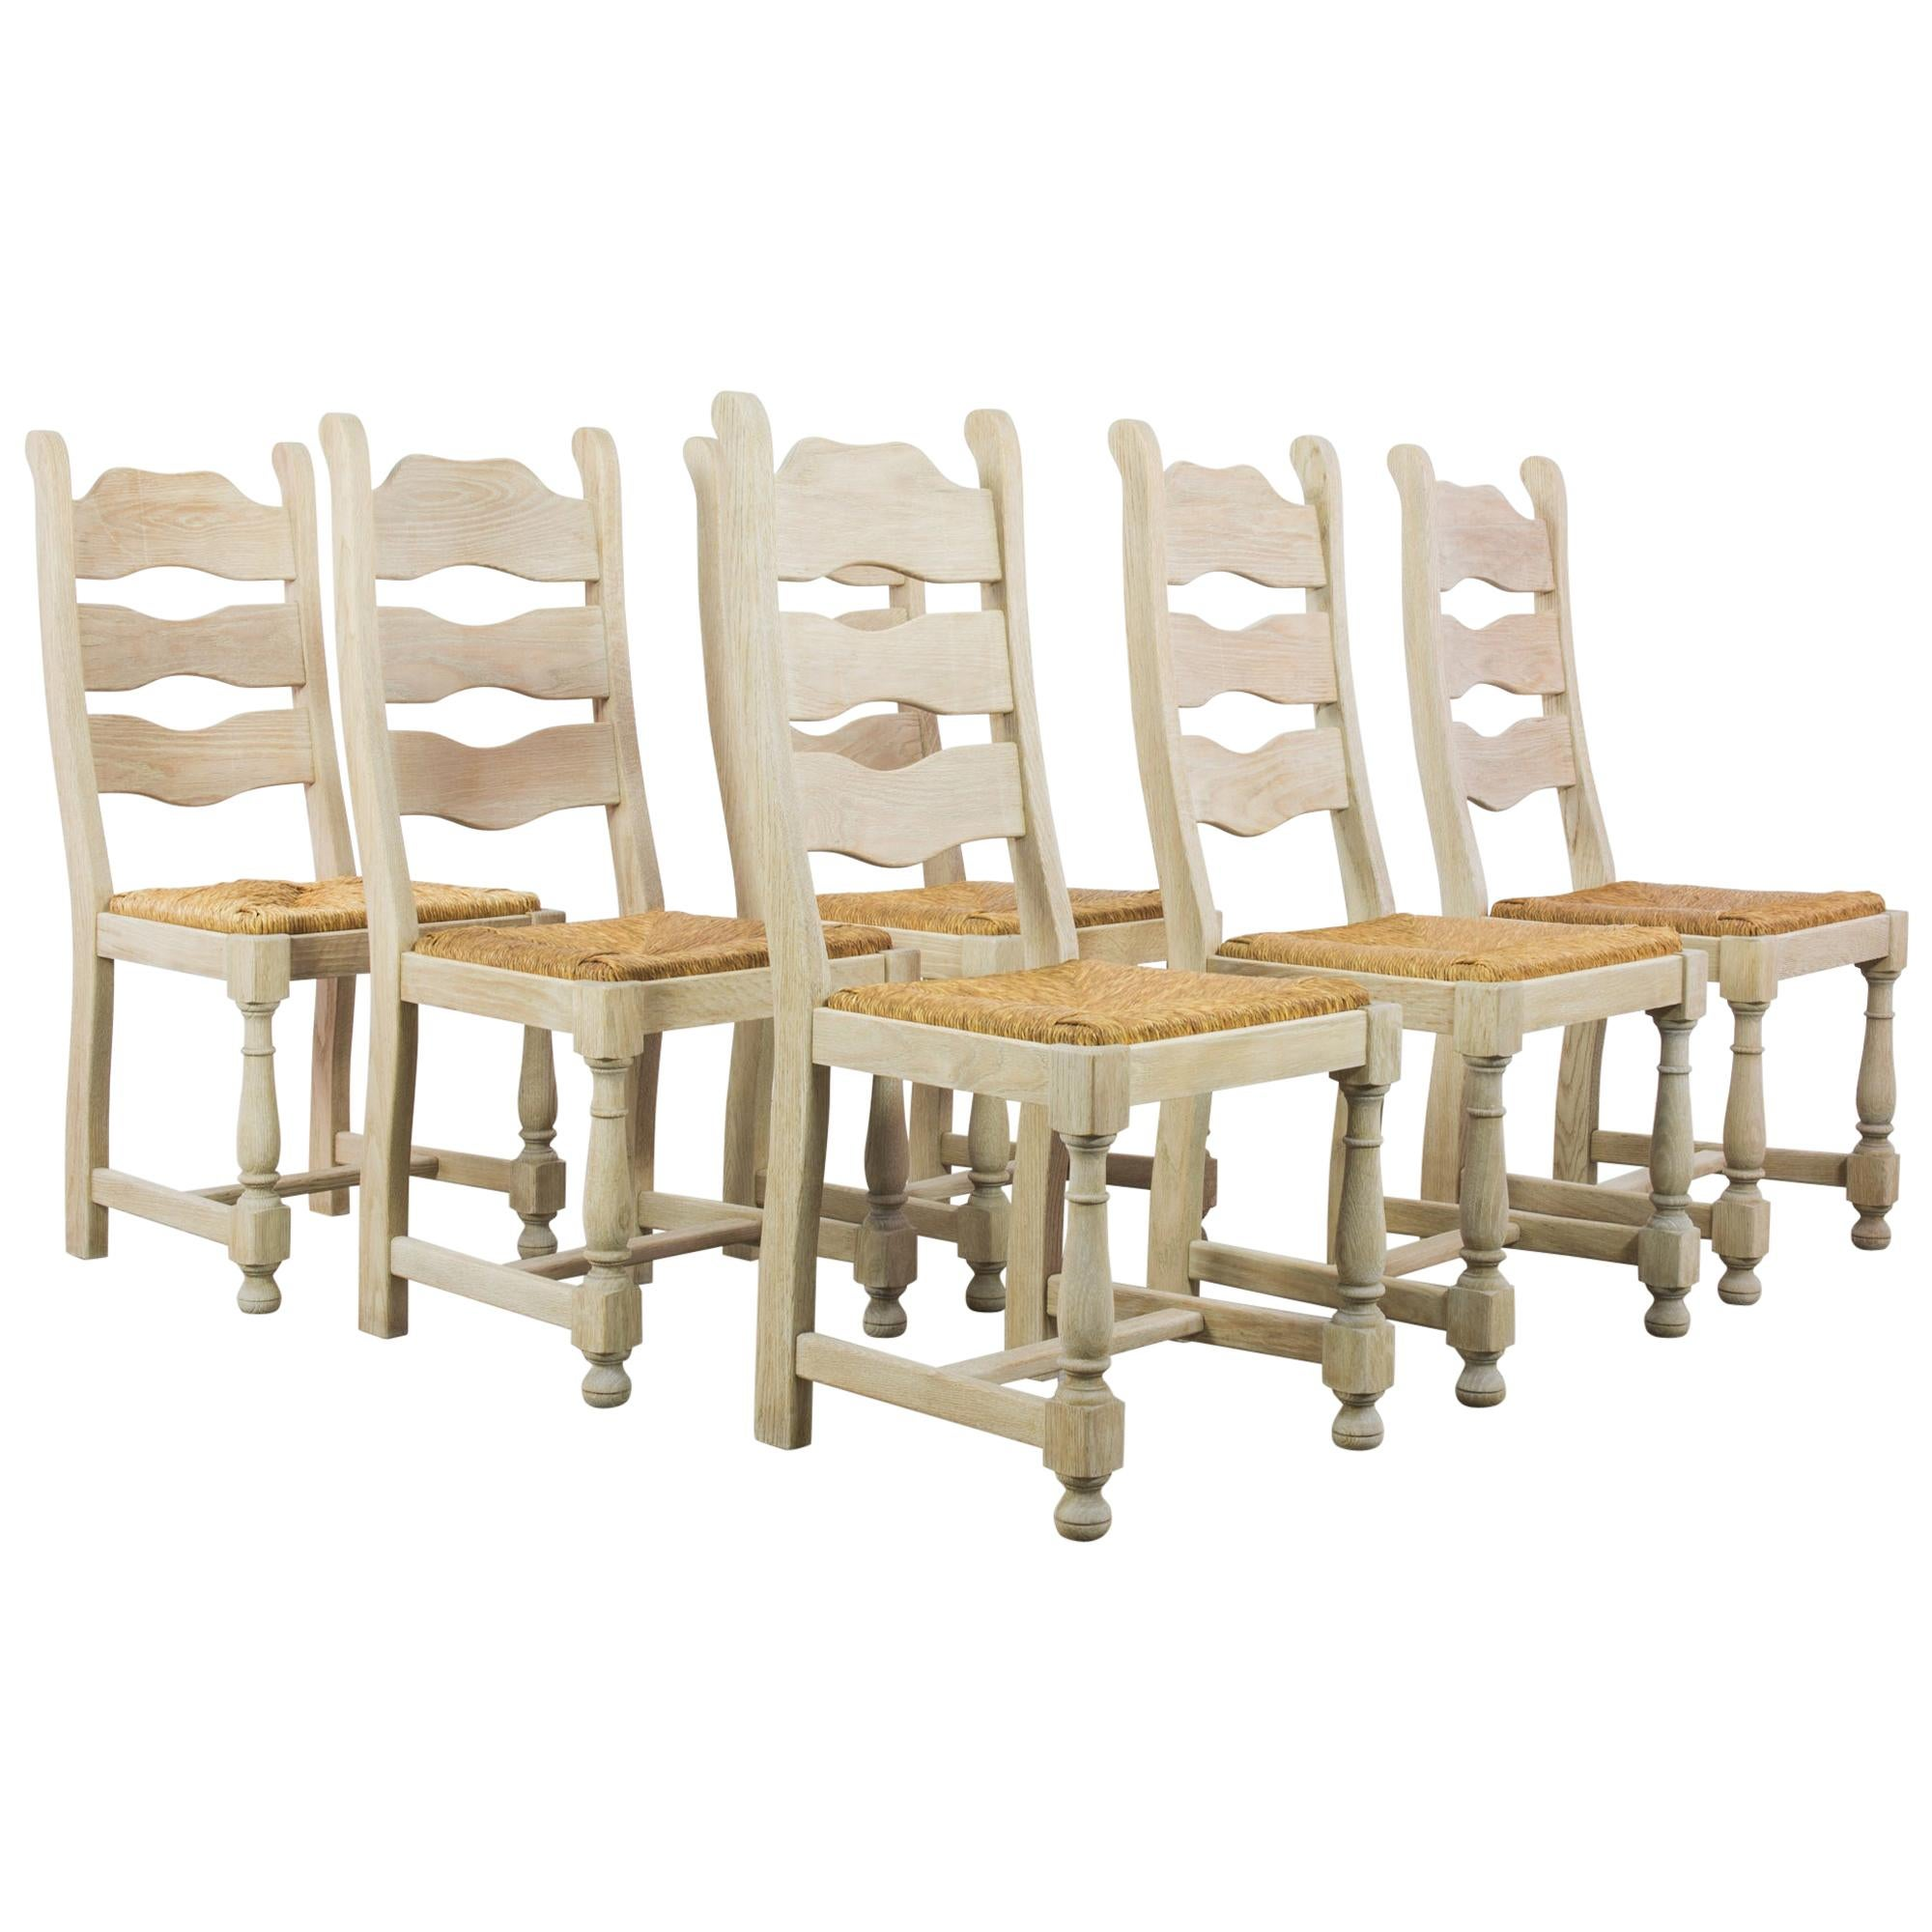 1960s Belgian Oak Dining Chairs with Woven Seats, Set of Six